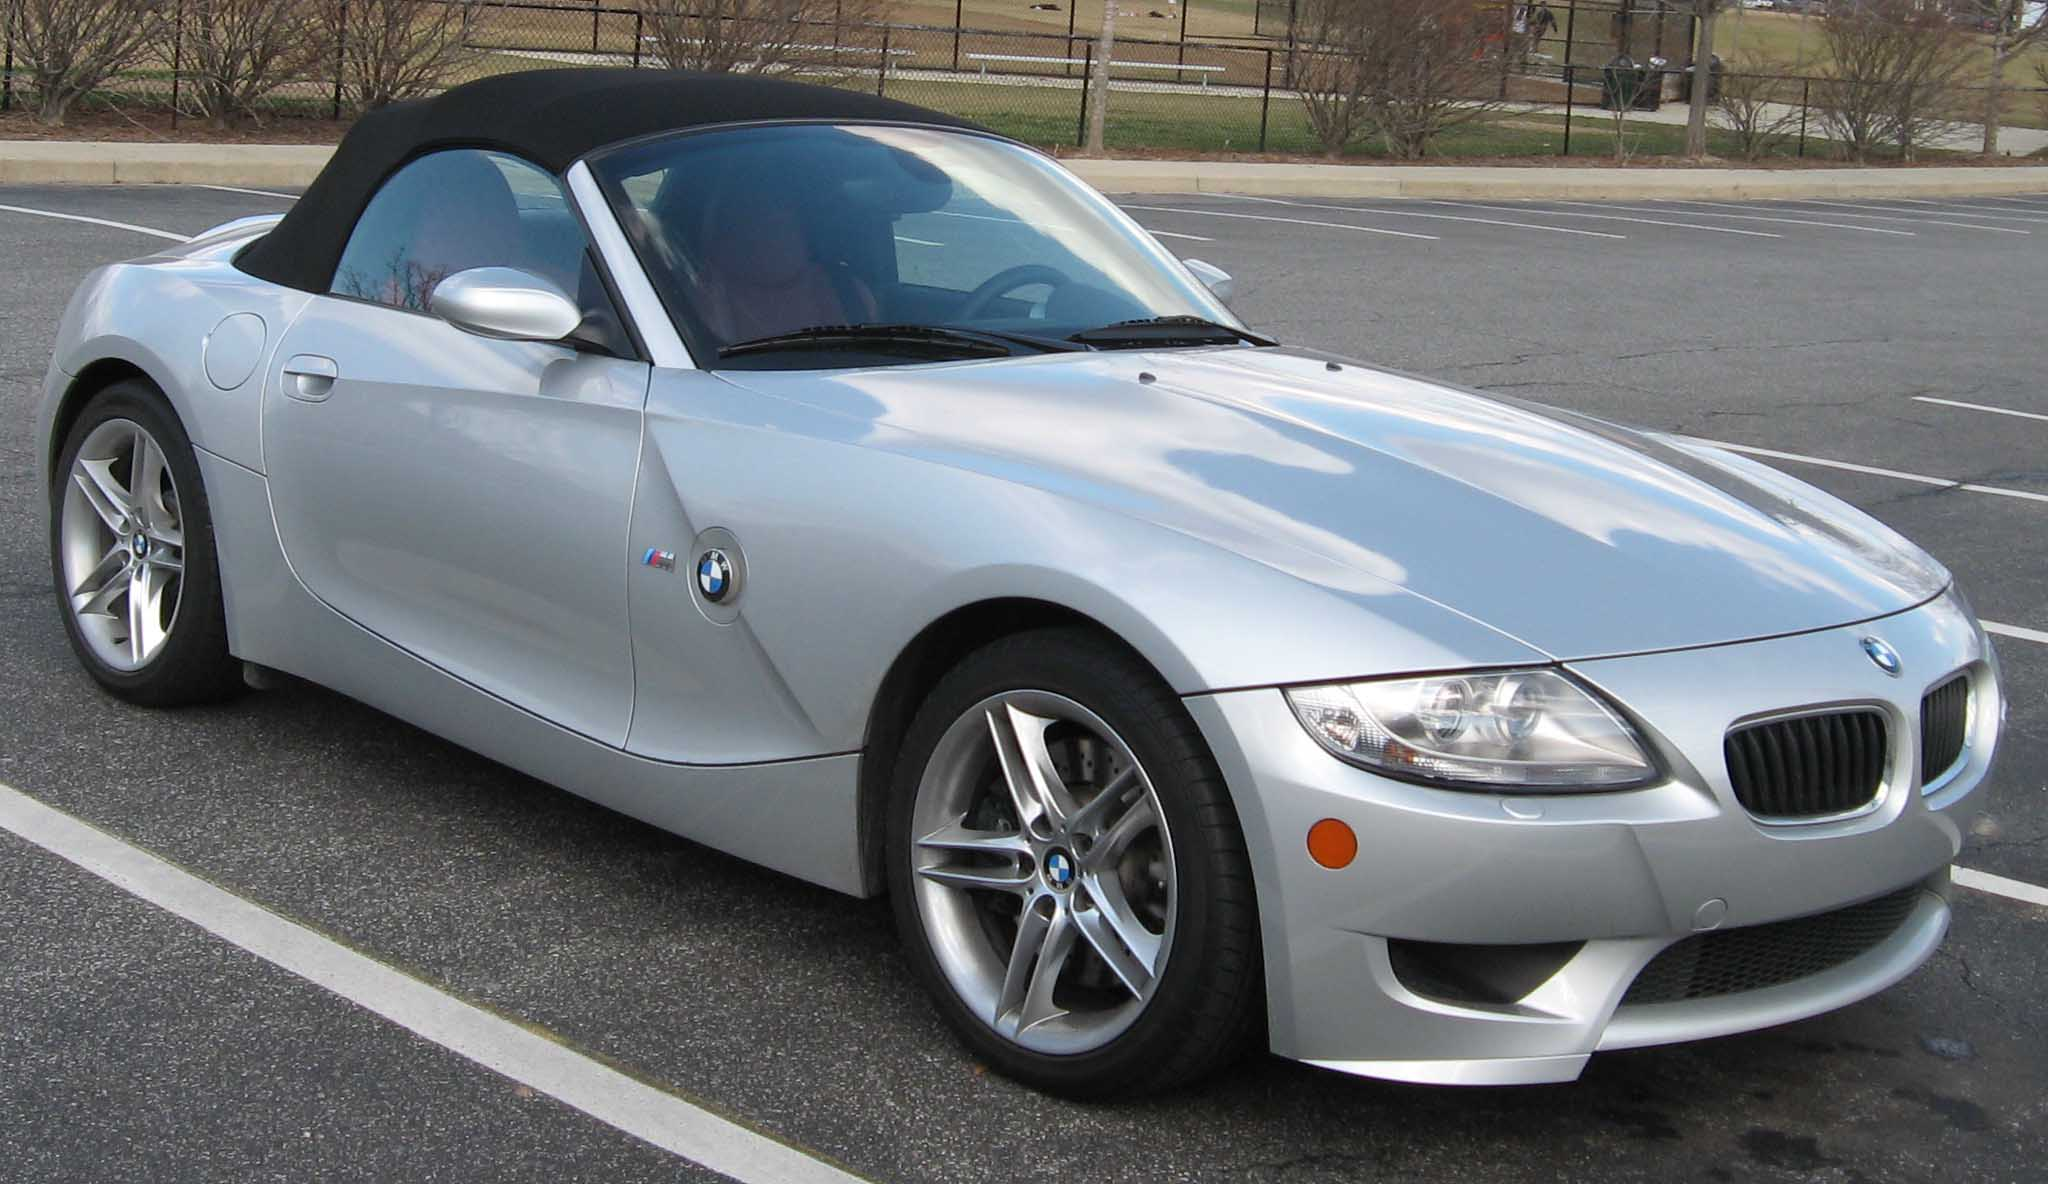 bmw z3 m roadster 1998 pictures #15